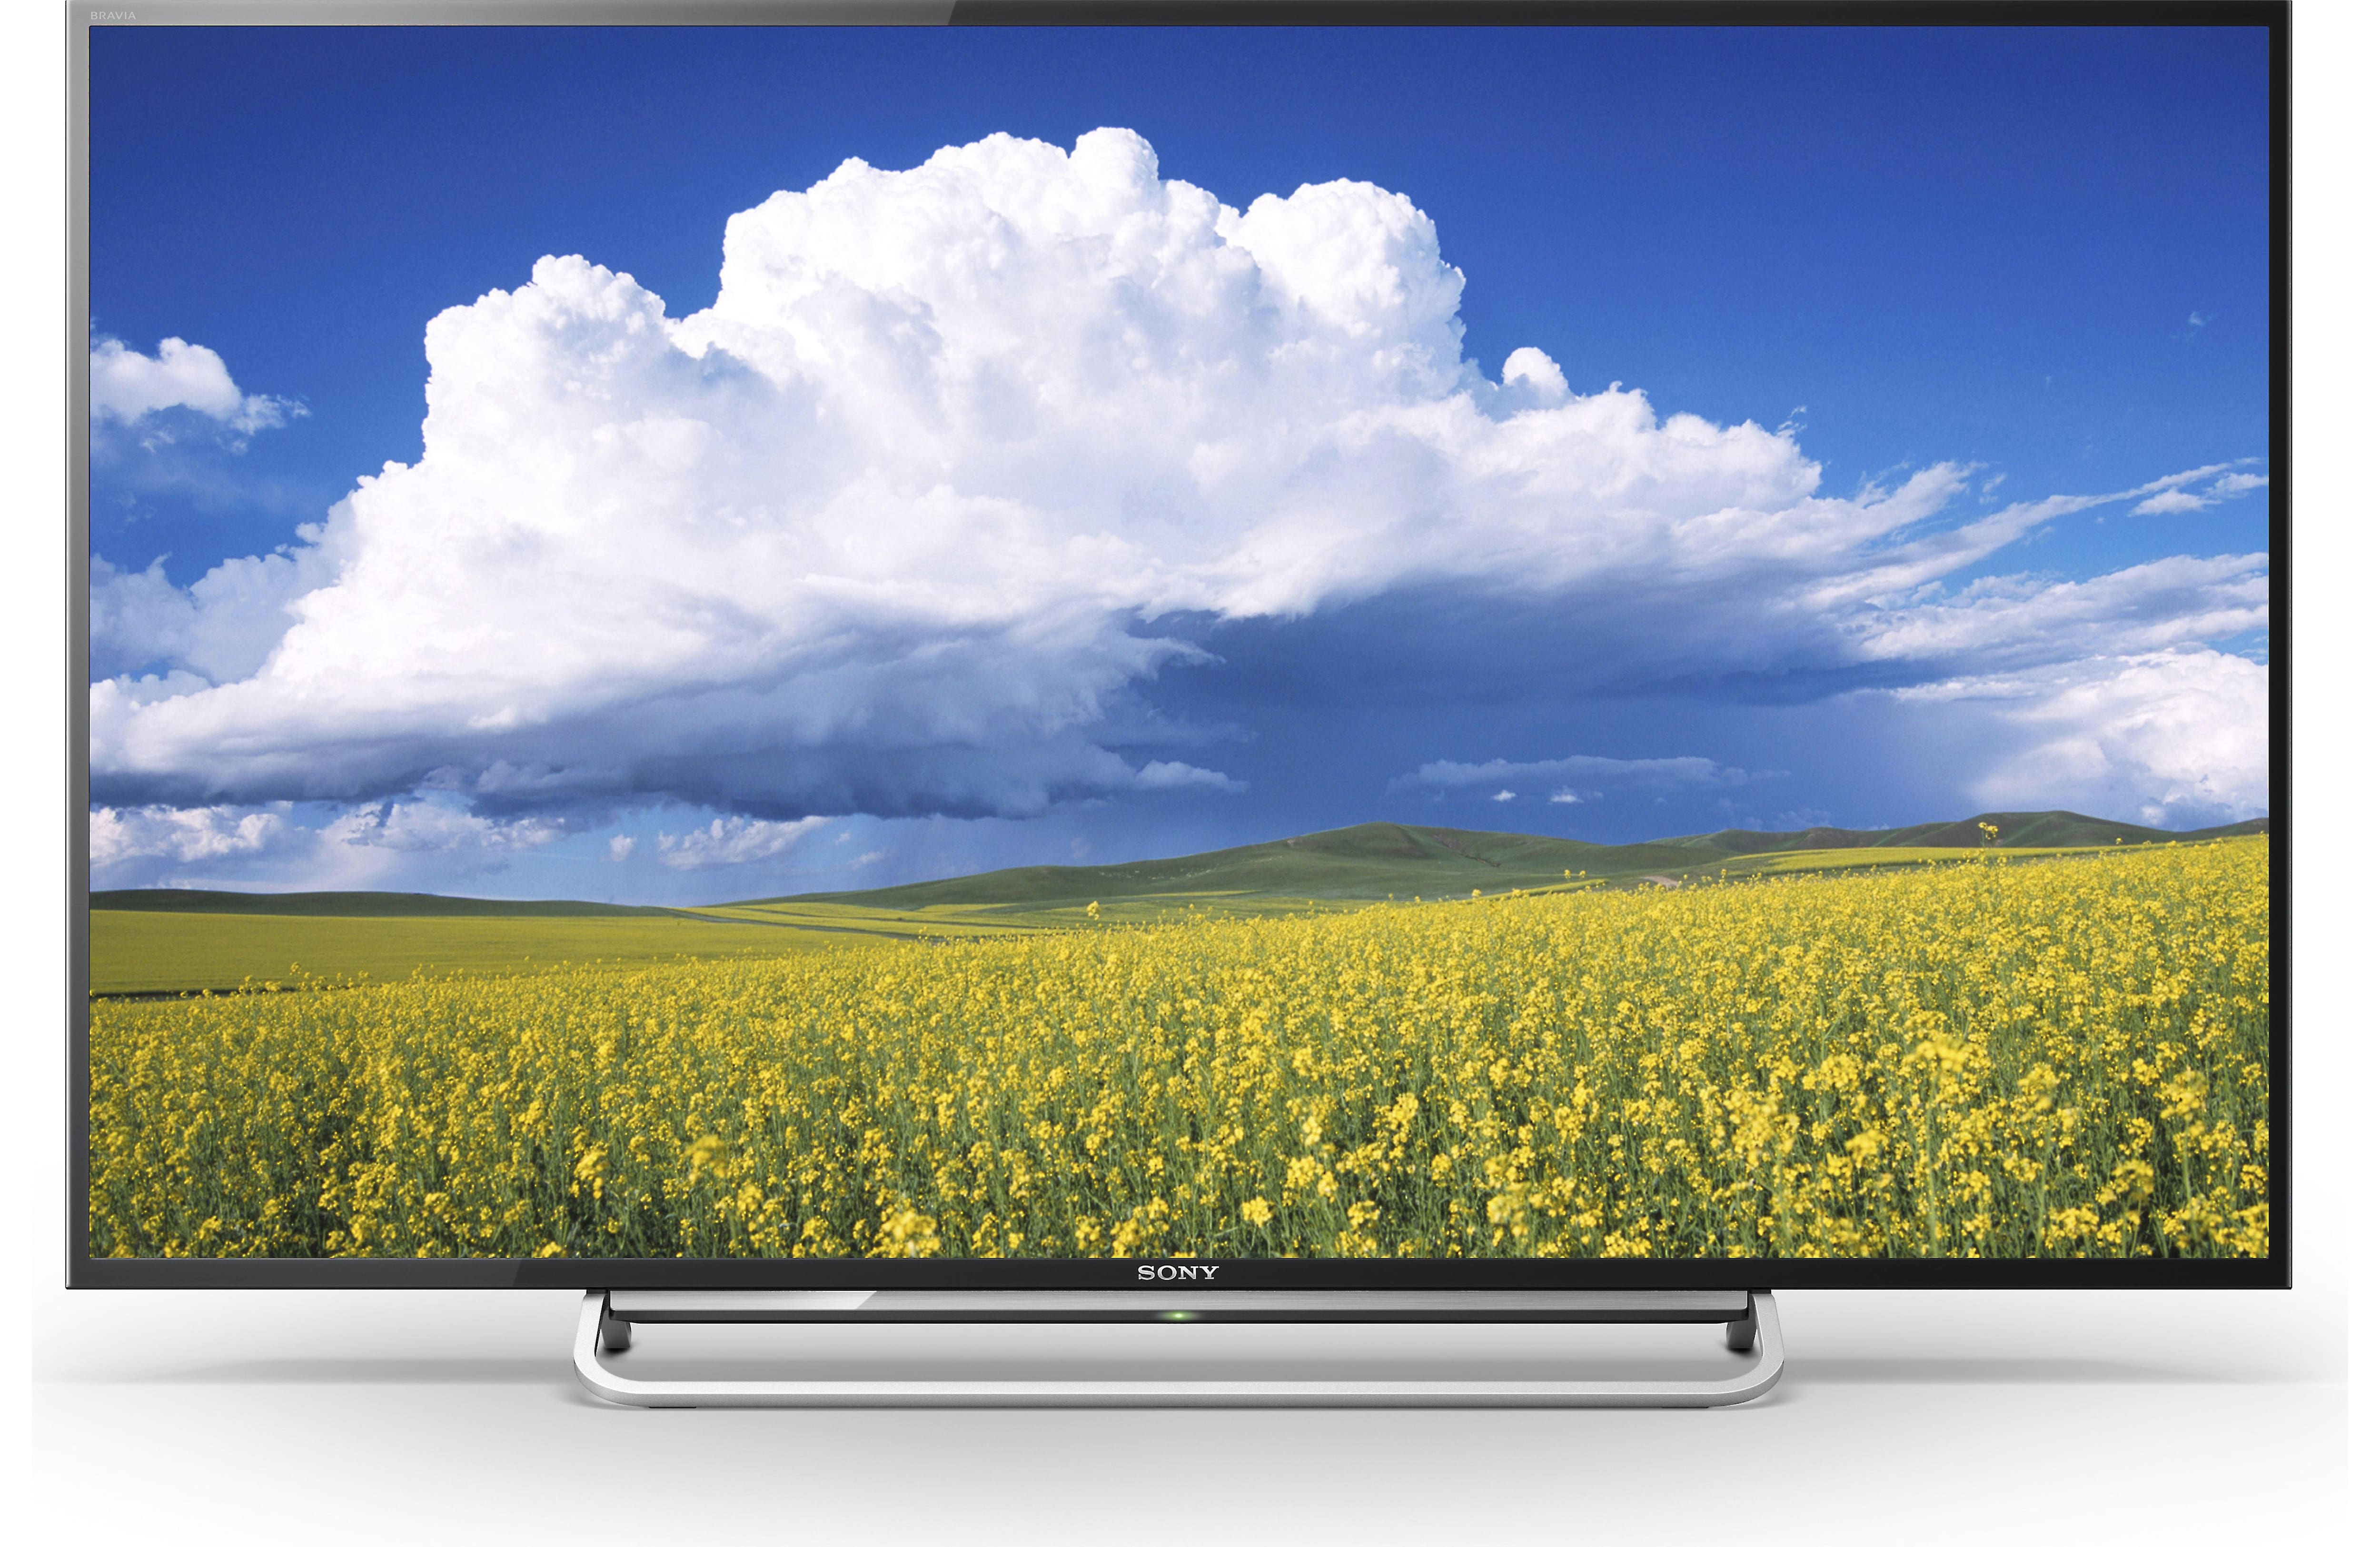 "40"" Sony KDL-40W600B WiFi Smart LED HDTV $220 After $200 Slickdeals Rebate + Free shipping"